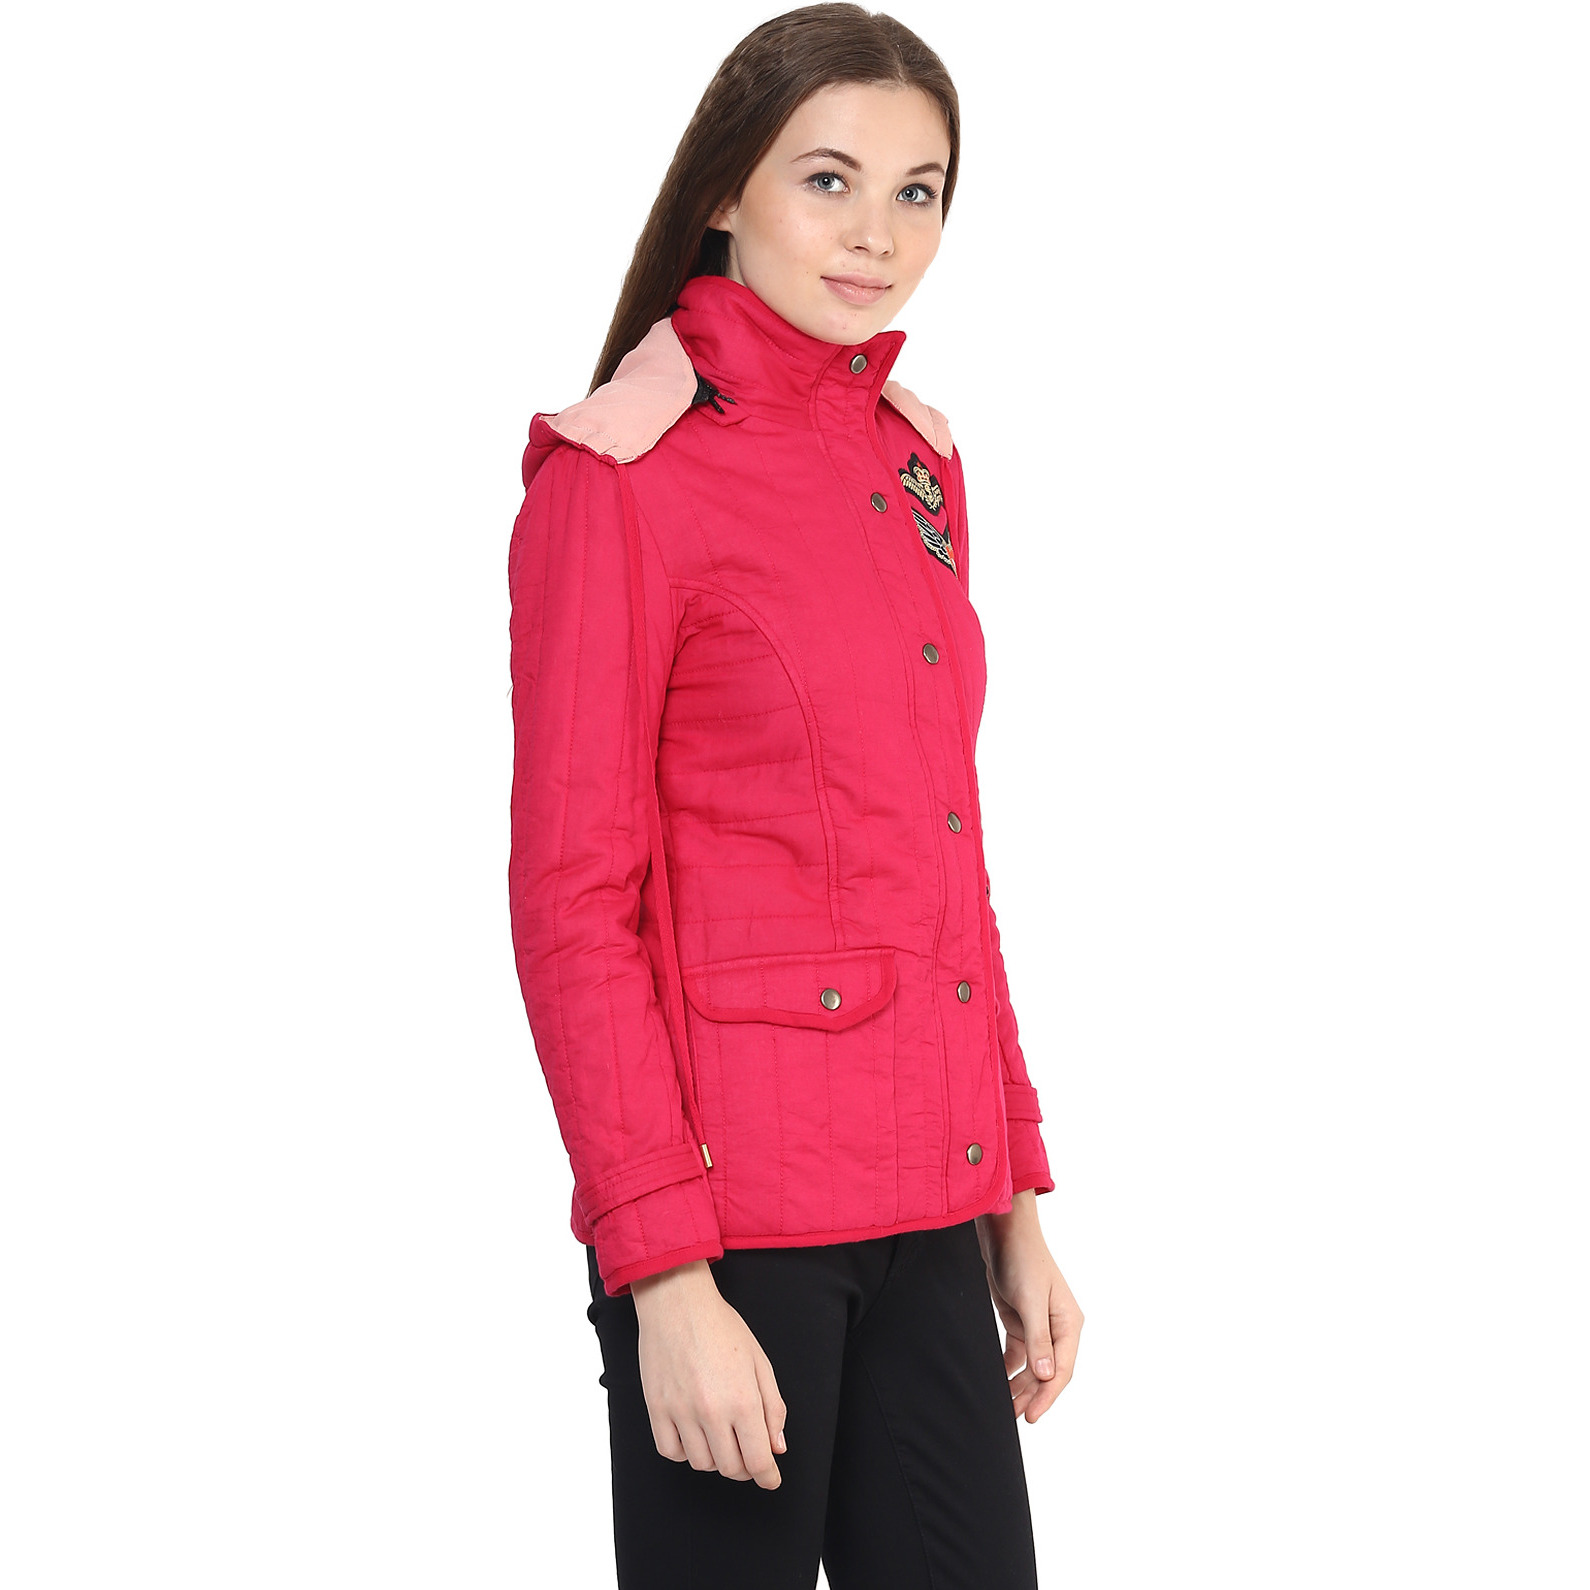 Front Zip Solid Fuchsia Quilted Hoodie Jacket With Patch Motifs On The Front (Size:S)